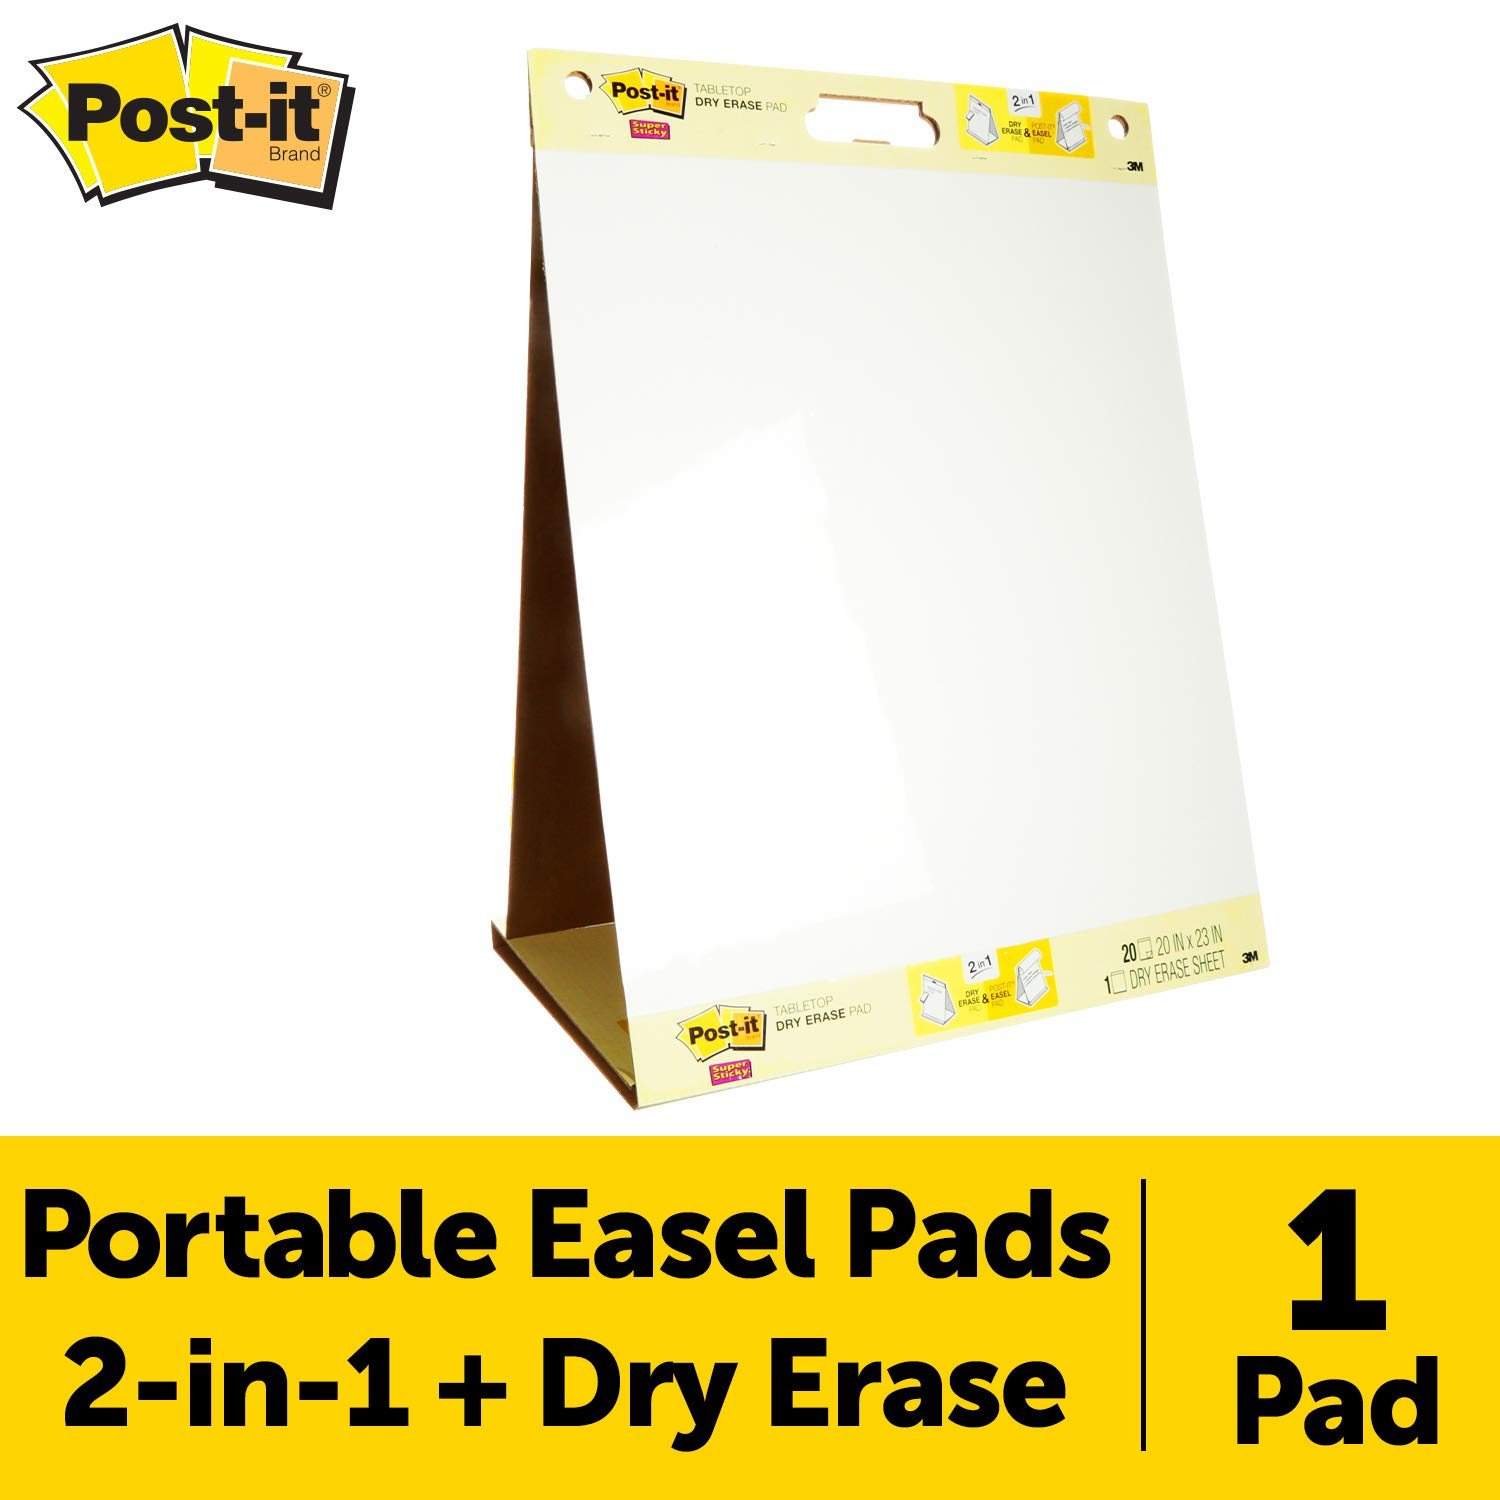 Post-it Super Sticky Portable Tabletop Easel Pad w/ Dry Erase Panel, 20x23 Inches, 20 Sheets/Pad, 1 Pad, One Side White Premium Self Stick Flip Chart Paper, One Side Dry Erase, Built-in Stand (563DE) by Post-it